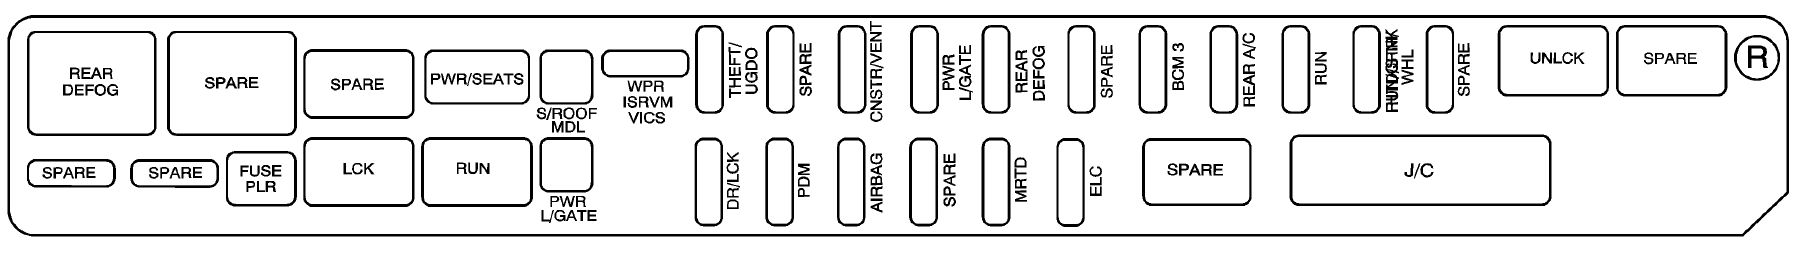 cadillac srx mk1 first generation 2008 fuse box diagram cadillac srx mk1 fuse box rear compartment right side